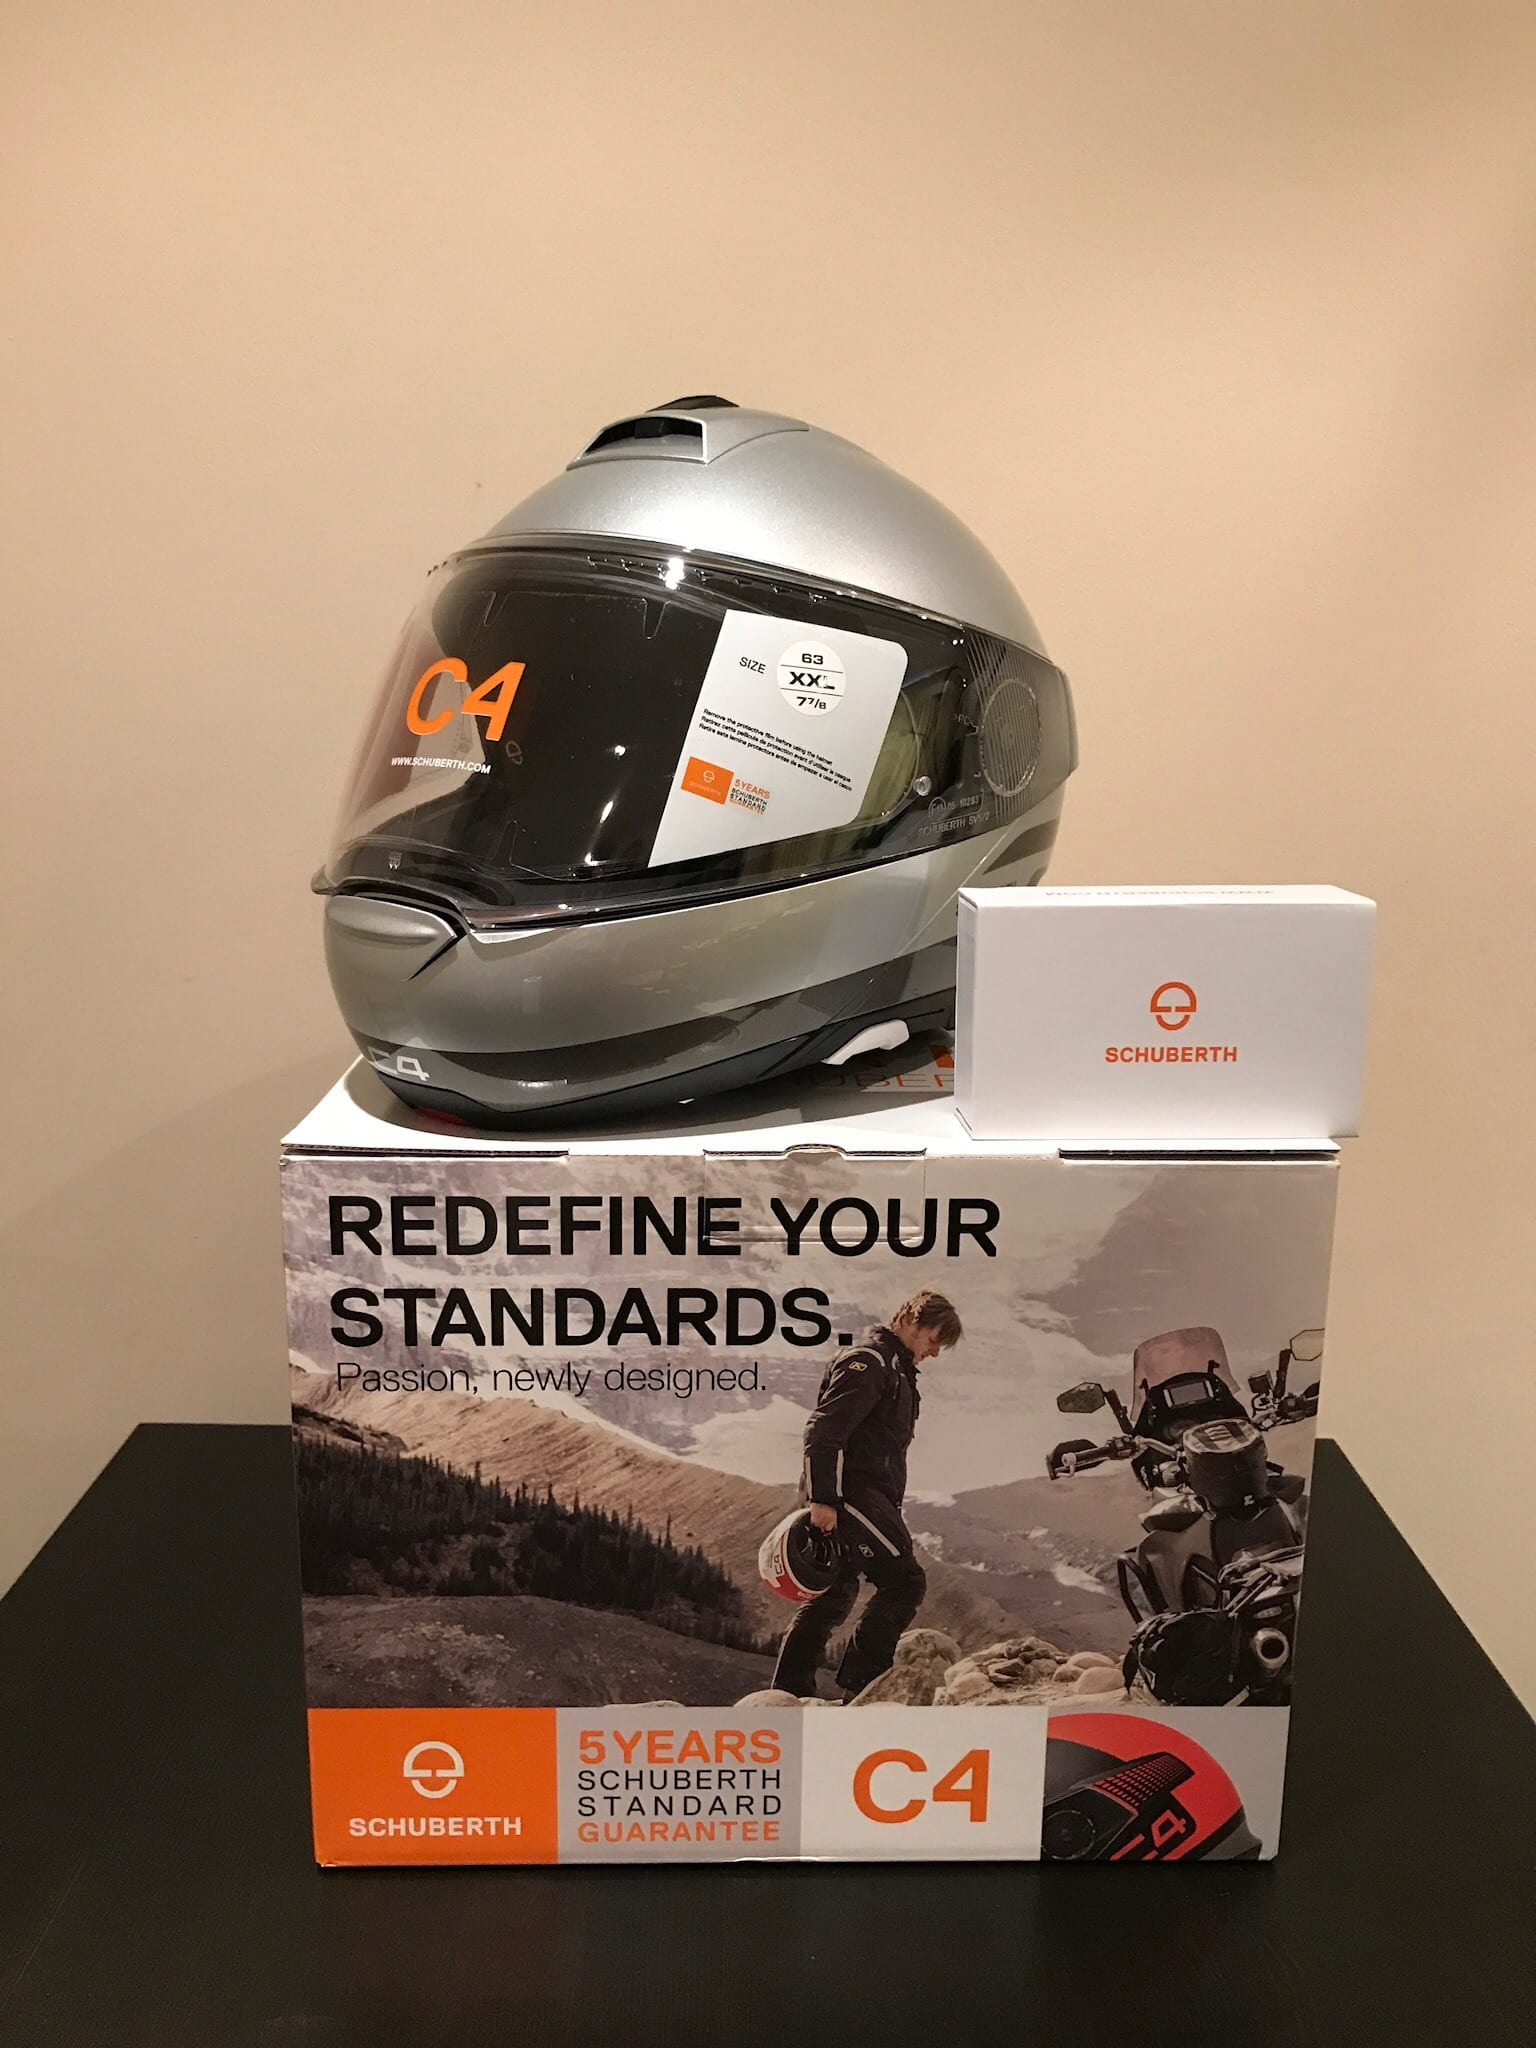 Schuberth C4 Helmet & SC1 Advance Communication System made by Sena